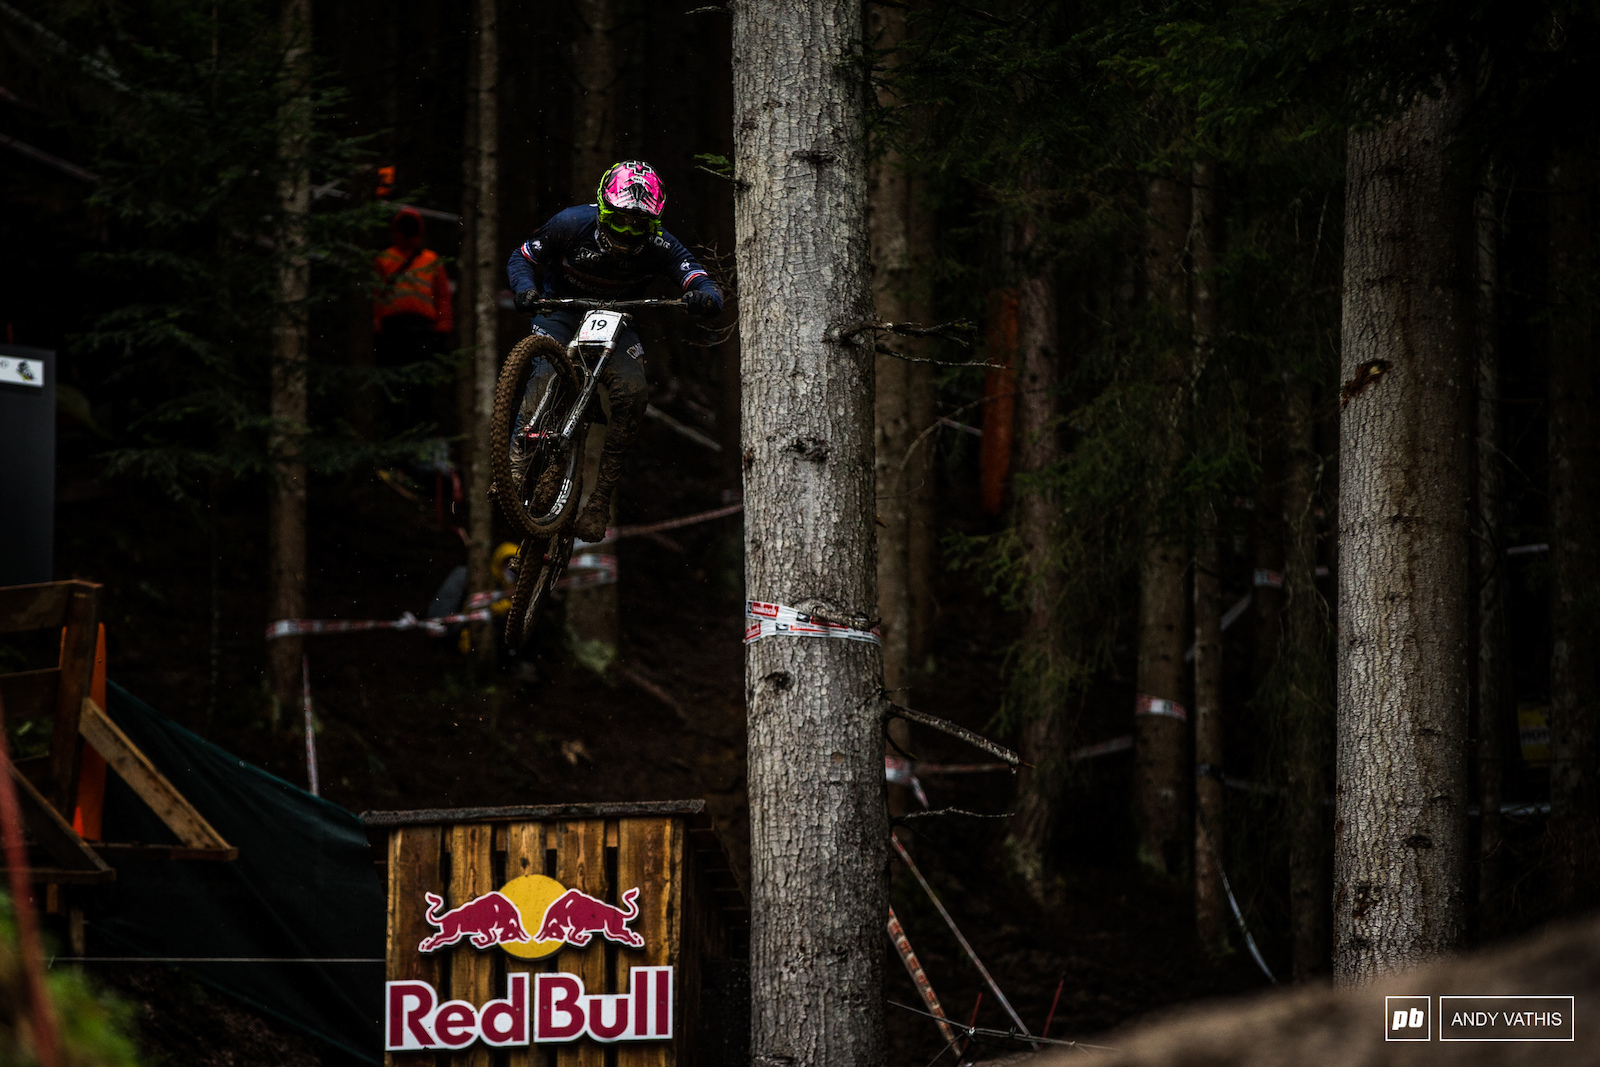 Thibaut Daprela showing his true strength today narrowly missing out on the top ten.